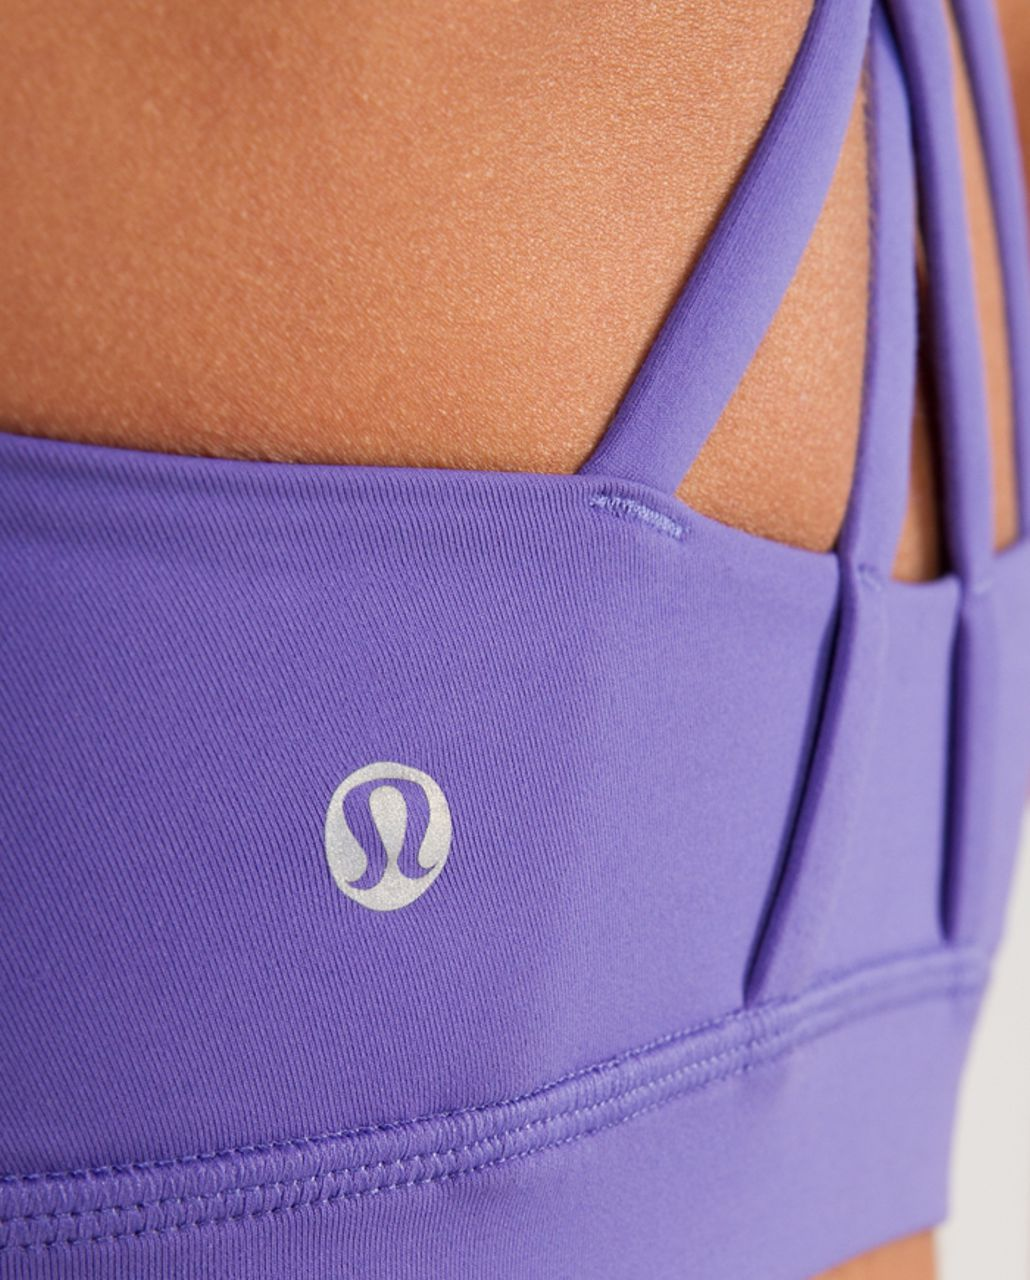 Lululemon Energy Bra - Persian Purple